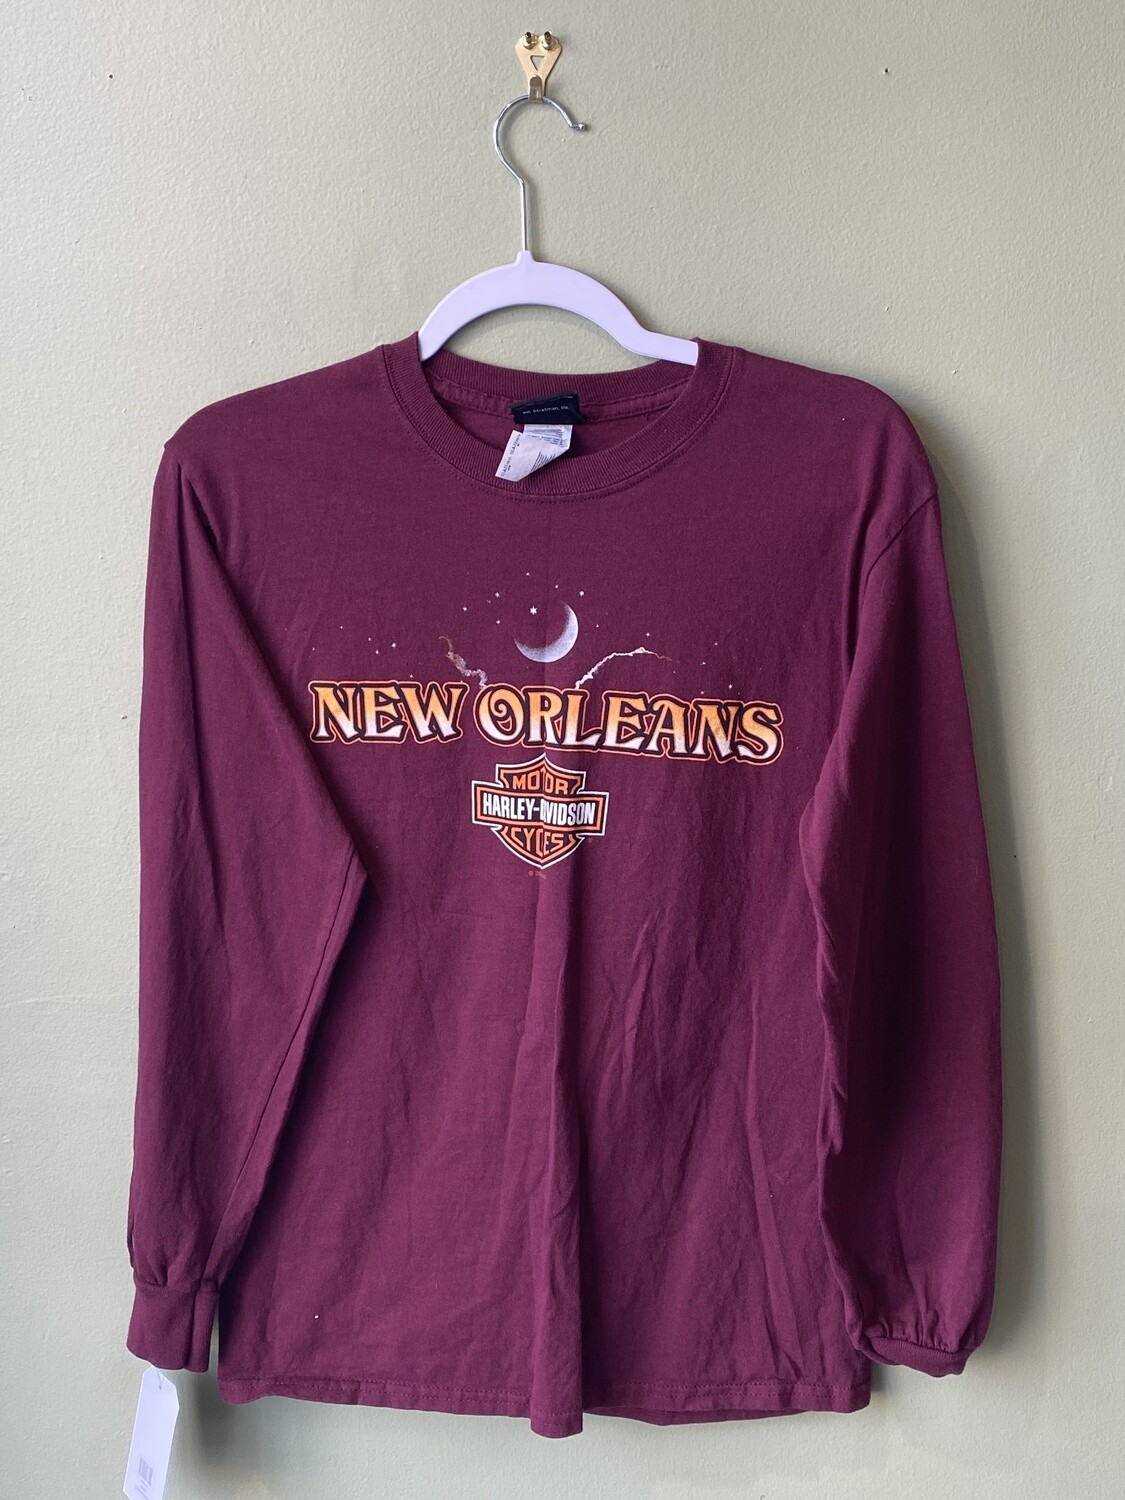 New Orleans Harley Davidson Tee Shirt, Size S